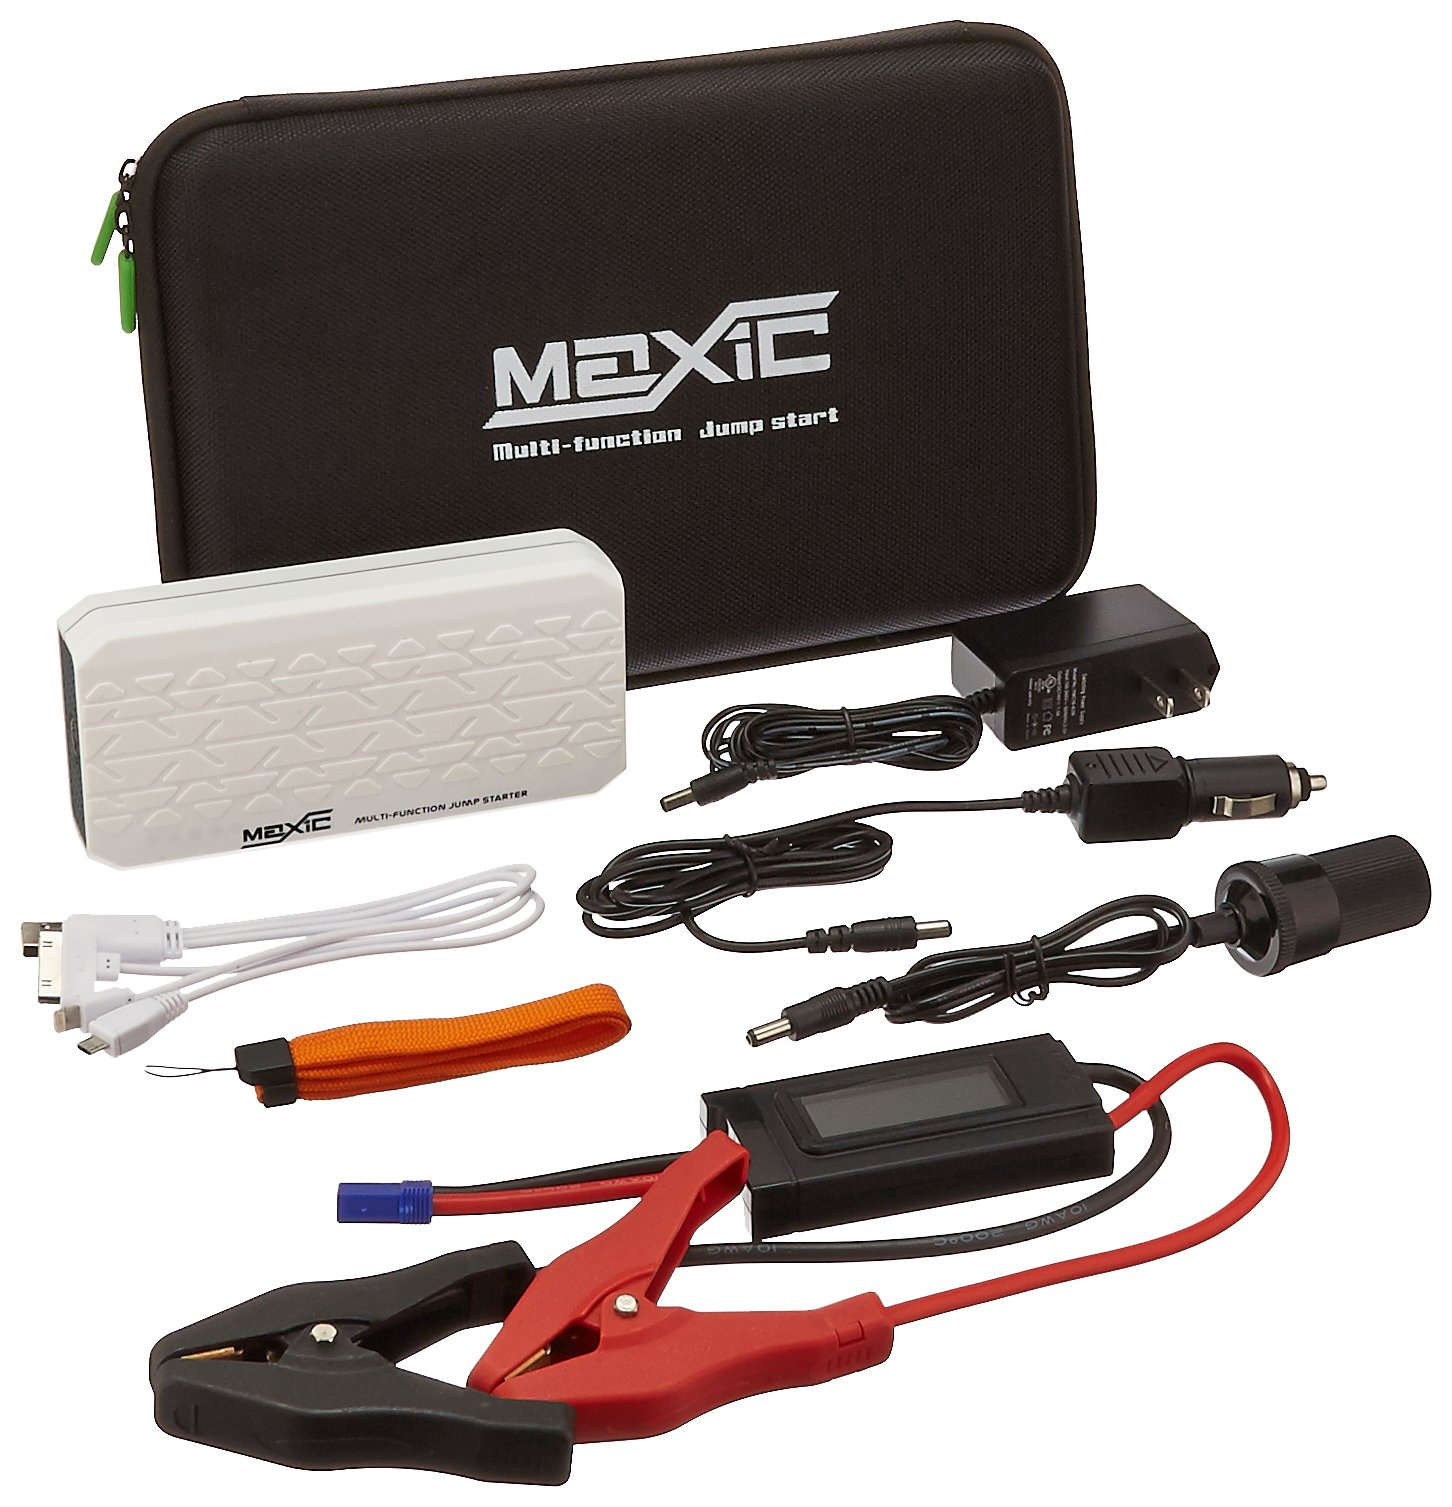 Maxic Compass-001 White Car Emergency Jump Starter with Power Bank for Phones and Portable Devices (Rechargeable, LED Readout Protection, LiPo Battery, Flashlight)